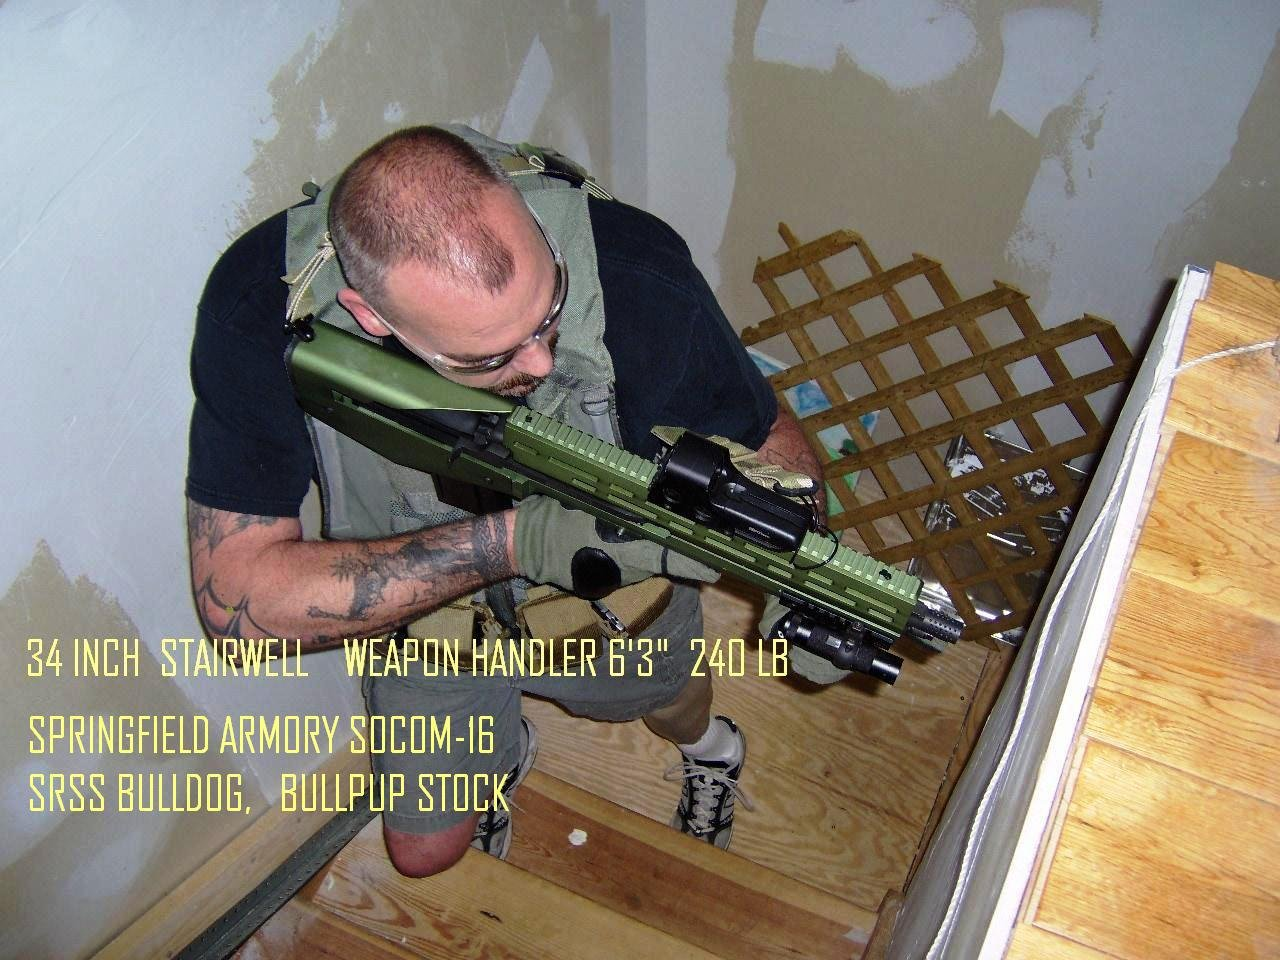 BullDog 762 Bullpup M14 M1A Rifle Chassis Stock System NYPD Det. Patrick OConner Stairs 90 degree <!  :en  >GEN 3 SRSS BullDog 762 BullPup M14/M1A 7.62mm NATO Rifle/Carbine Chassis/Stock System for Urban Tactical Operations, including Vehicle Ops (Review and Photos!)<!  :  >